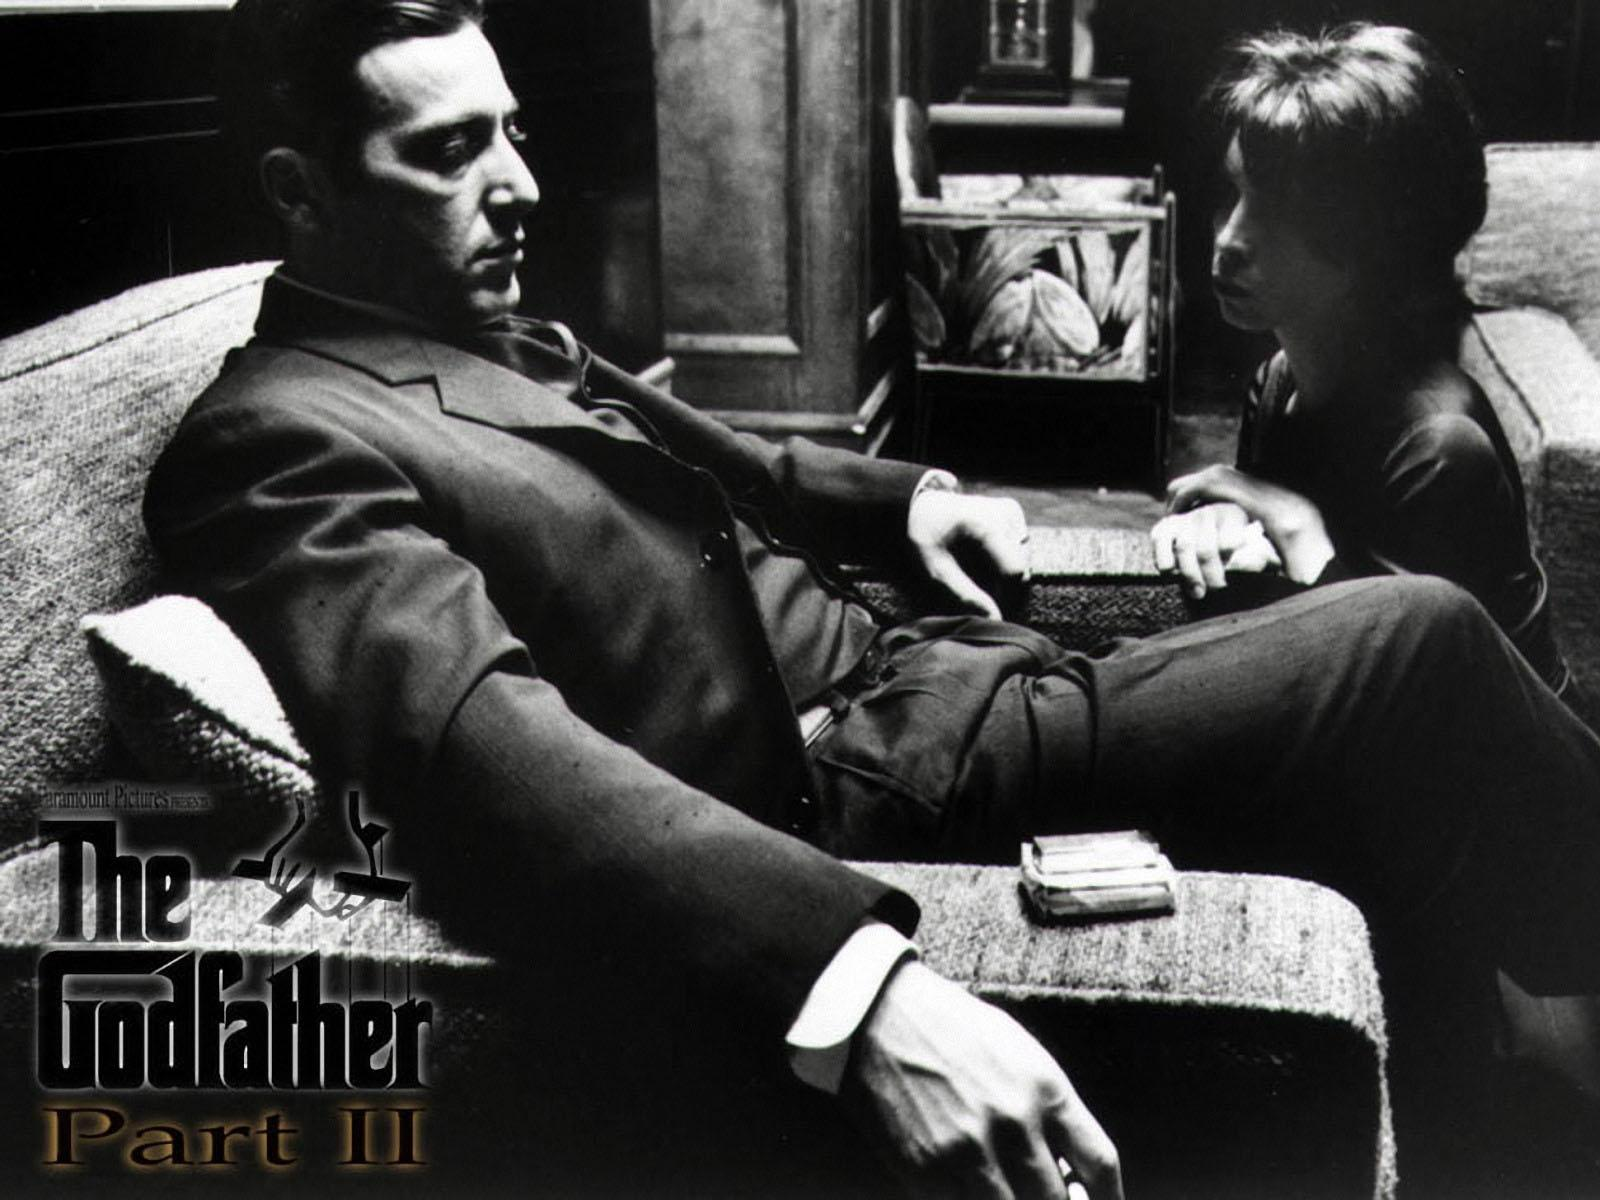 The Godfather Part II Wallpapers,The Godfather: Part II Wallpapers